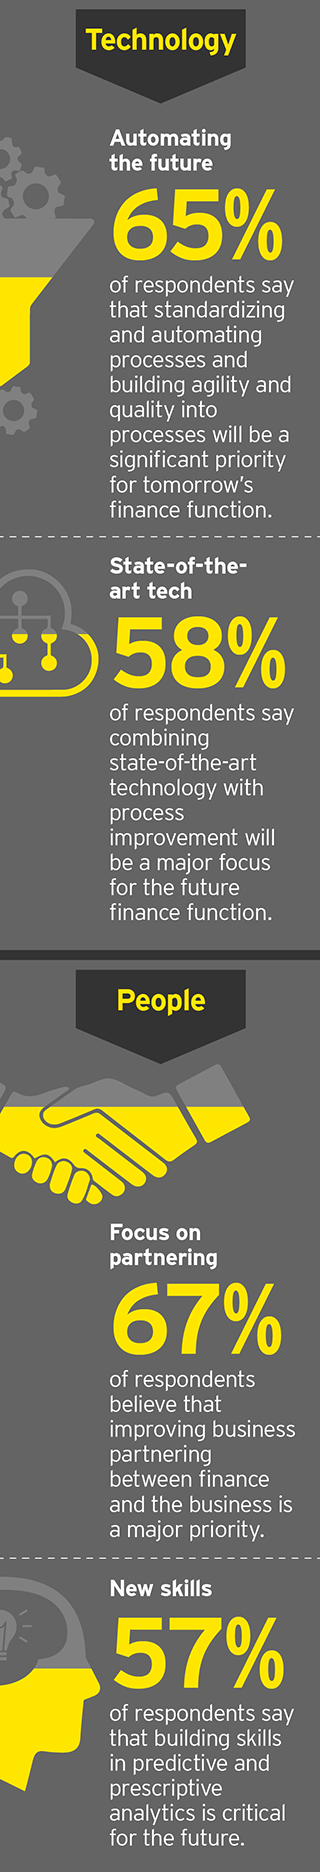 EY - Building the future finance function: technology plus people